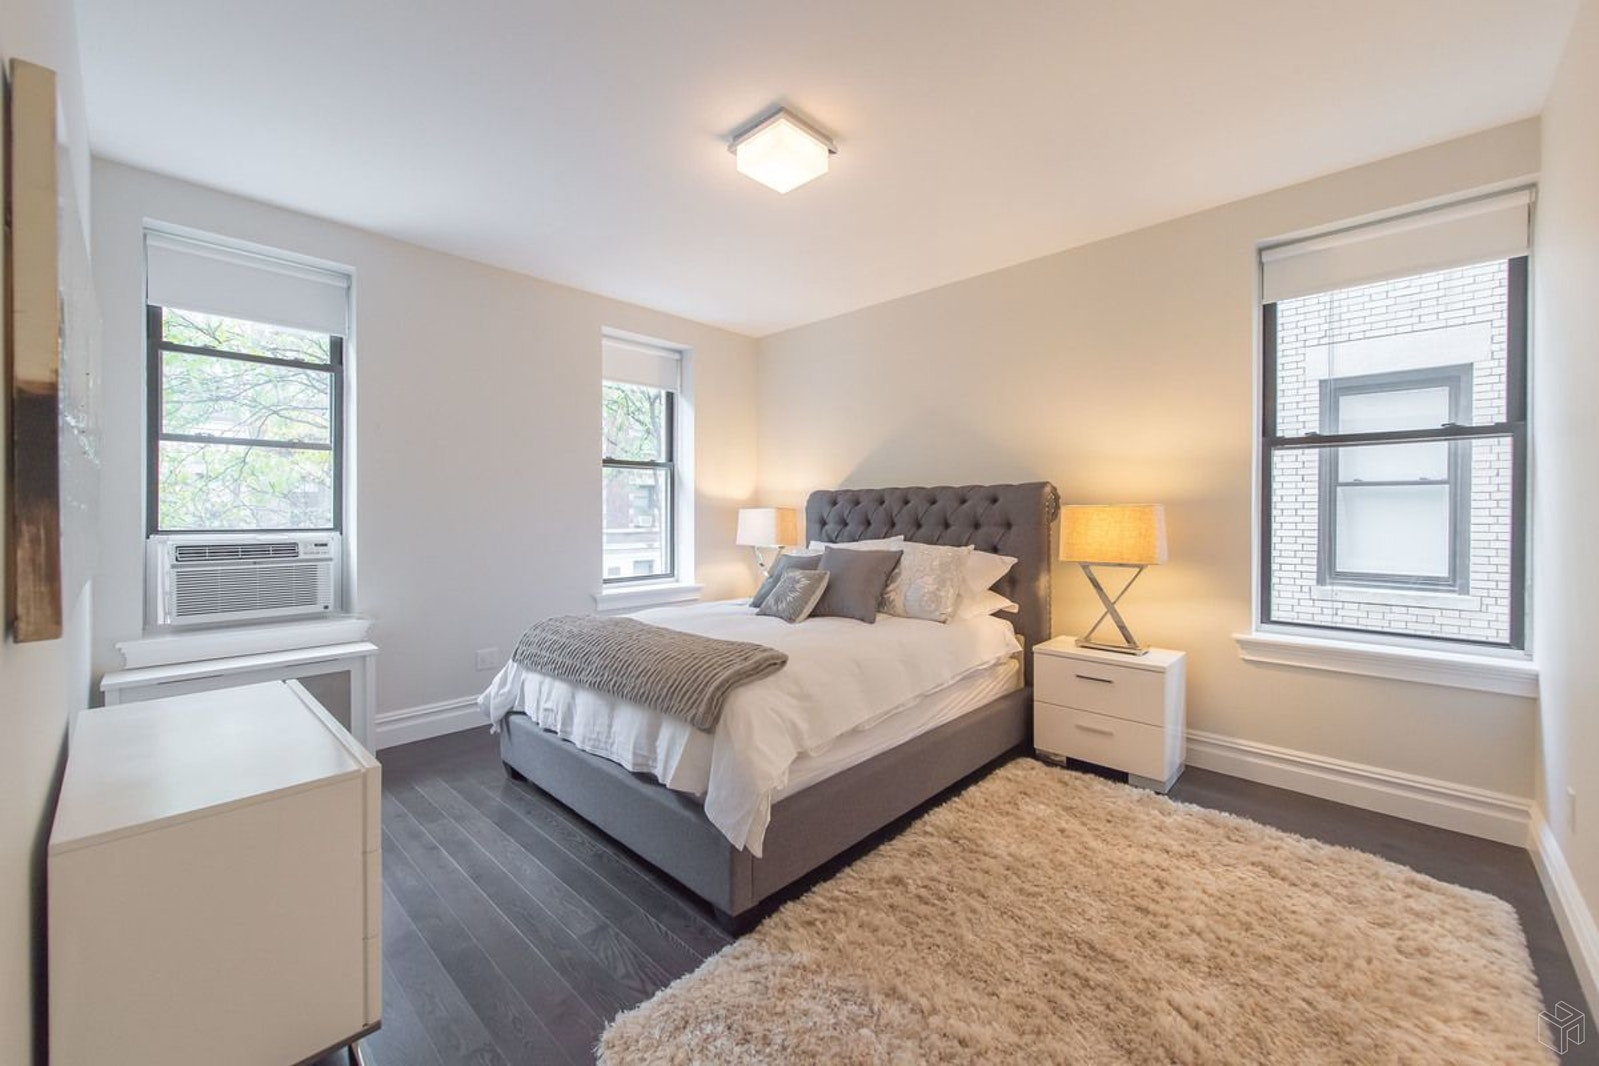 526 West 111th Street 2cd, Upper West Side, NYC, 10025, Price Not Disclosed, Rented Property, Halstead Real Estate, Photo 5